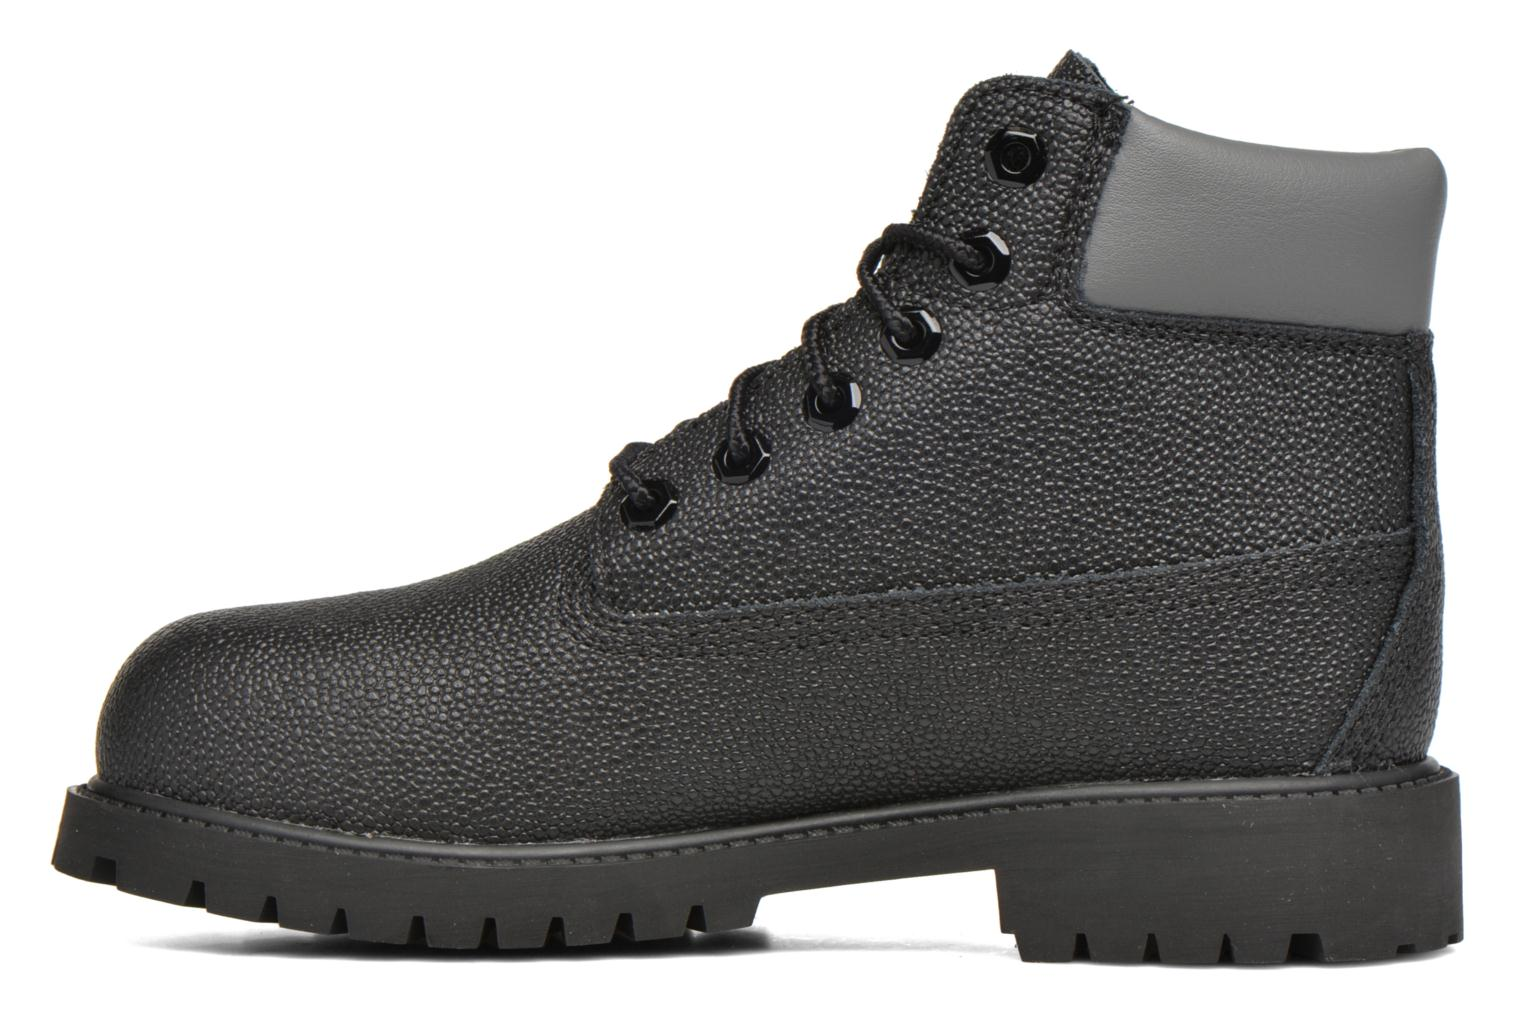 Bottines et boots Timberland 6 In Premium WP Boot Noir vue face